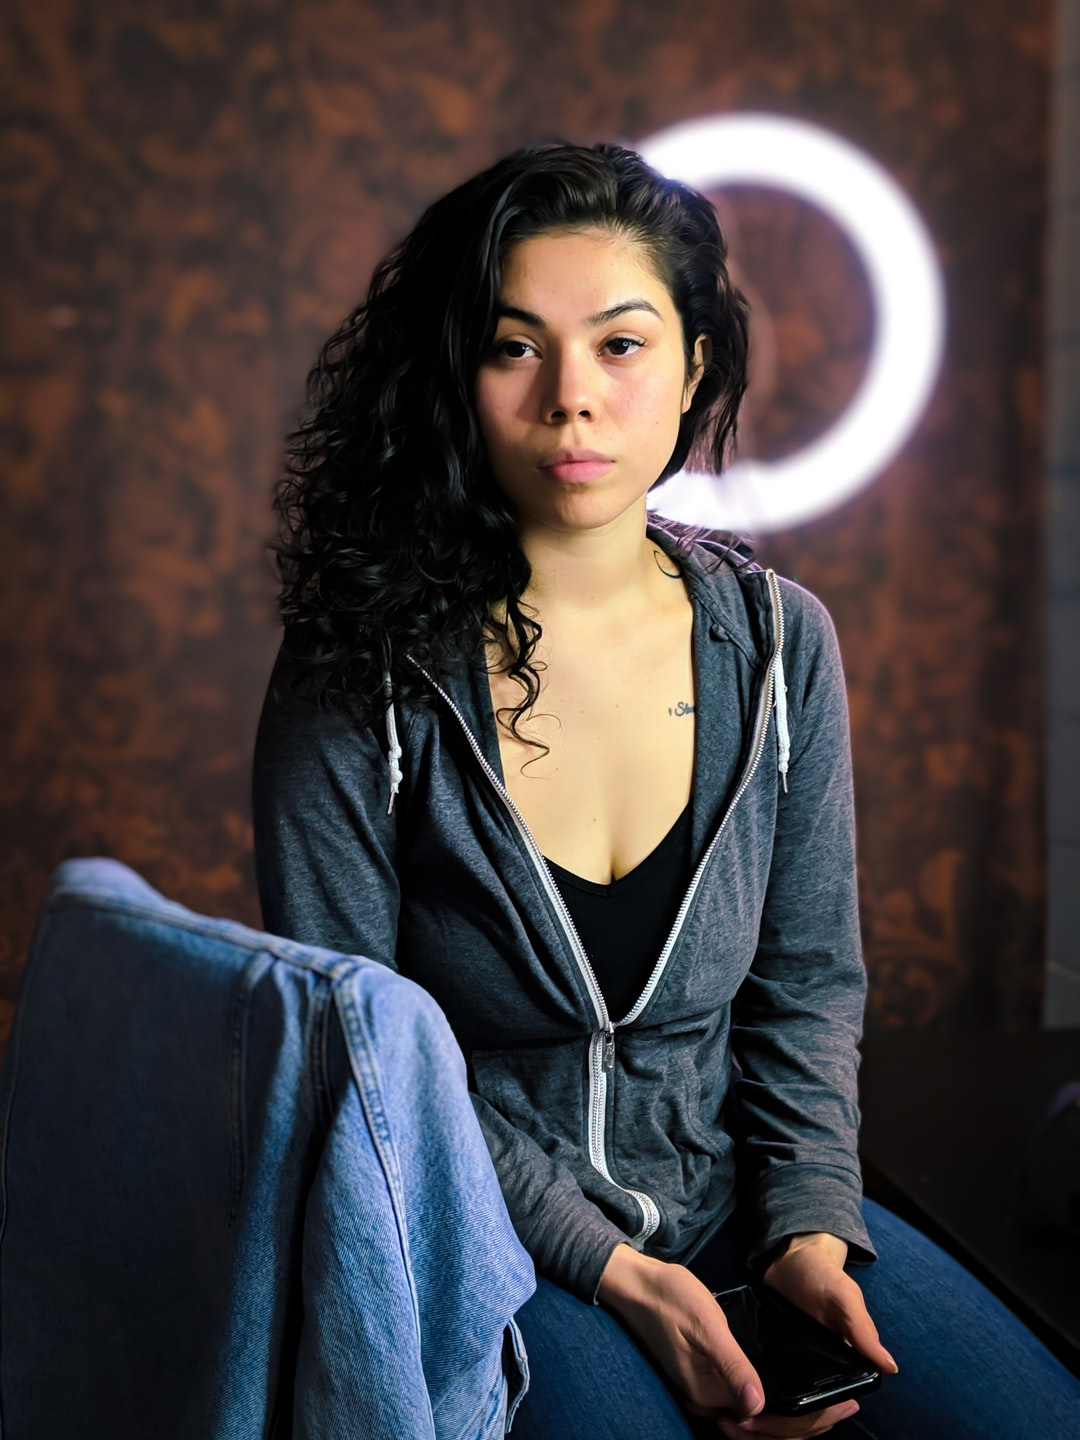 Native American Woman in a hoodie Sitting in front of a ring light and rust colored background, with a jean jacket on the chair back.